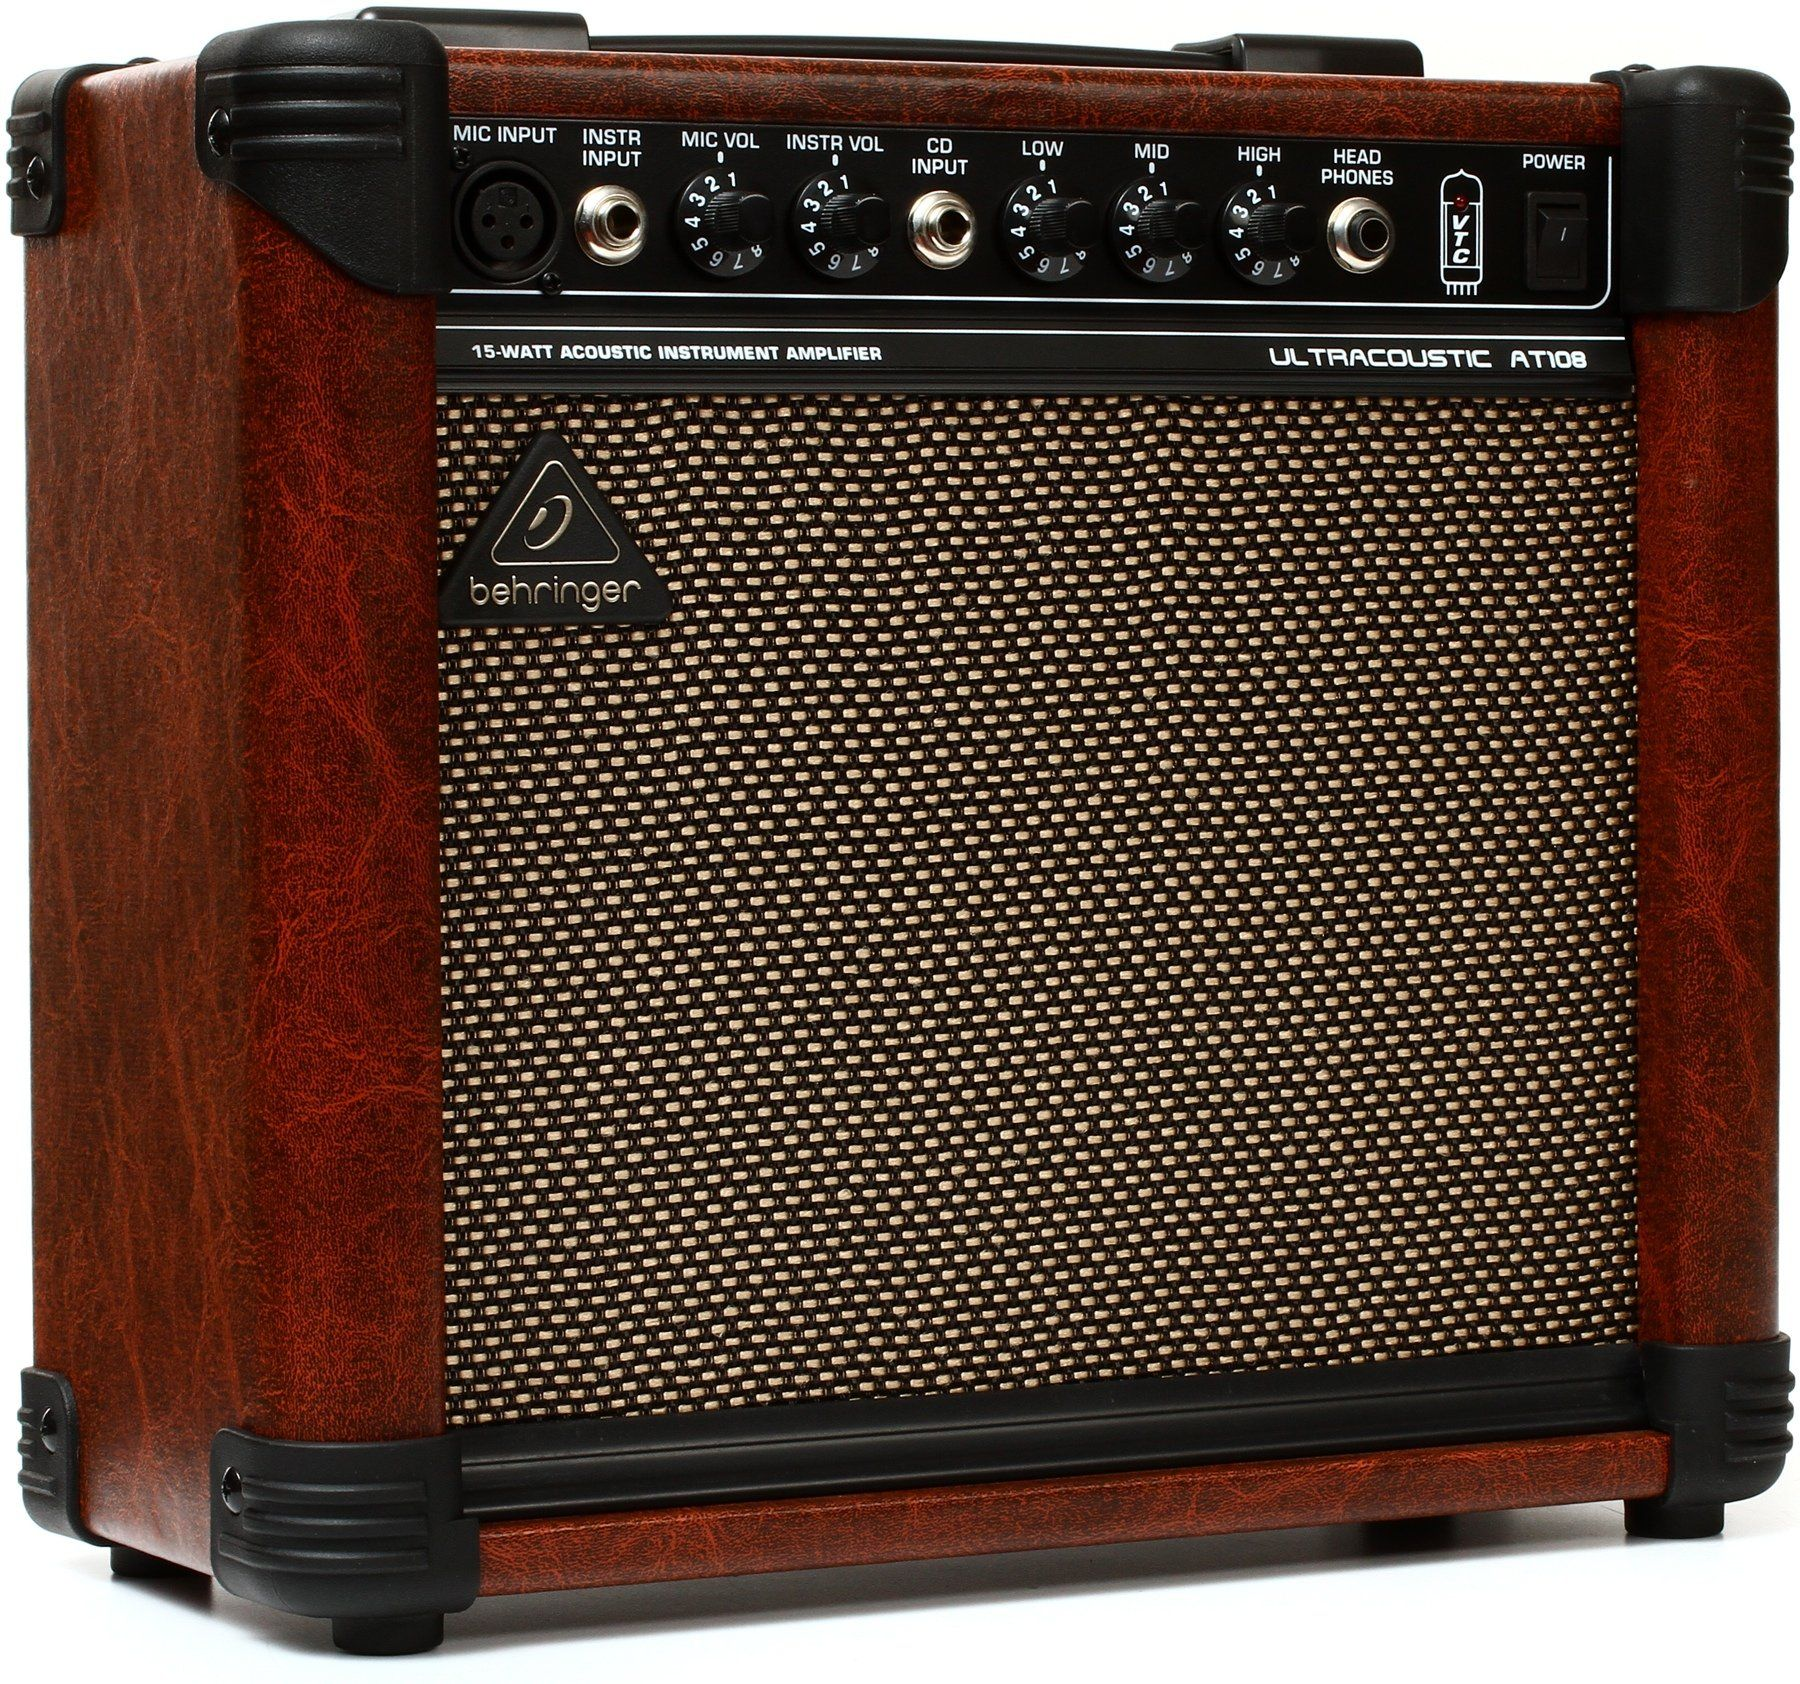 Behringer Ultracoustic At108 15 Watt 8 Acoustic Instrument Amp Sweetwater Guitar Amps For Sale Acoustic Instrument Acoustic